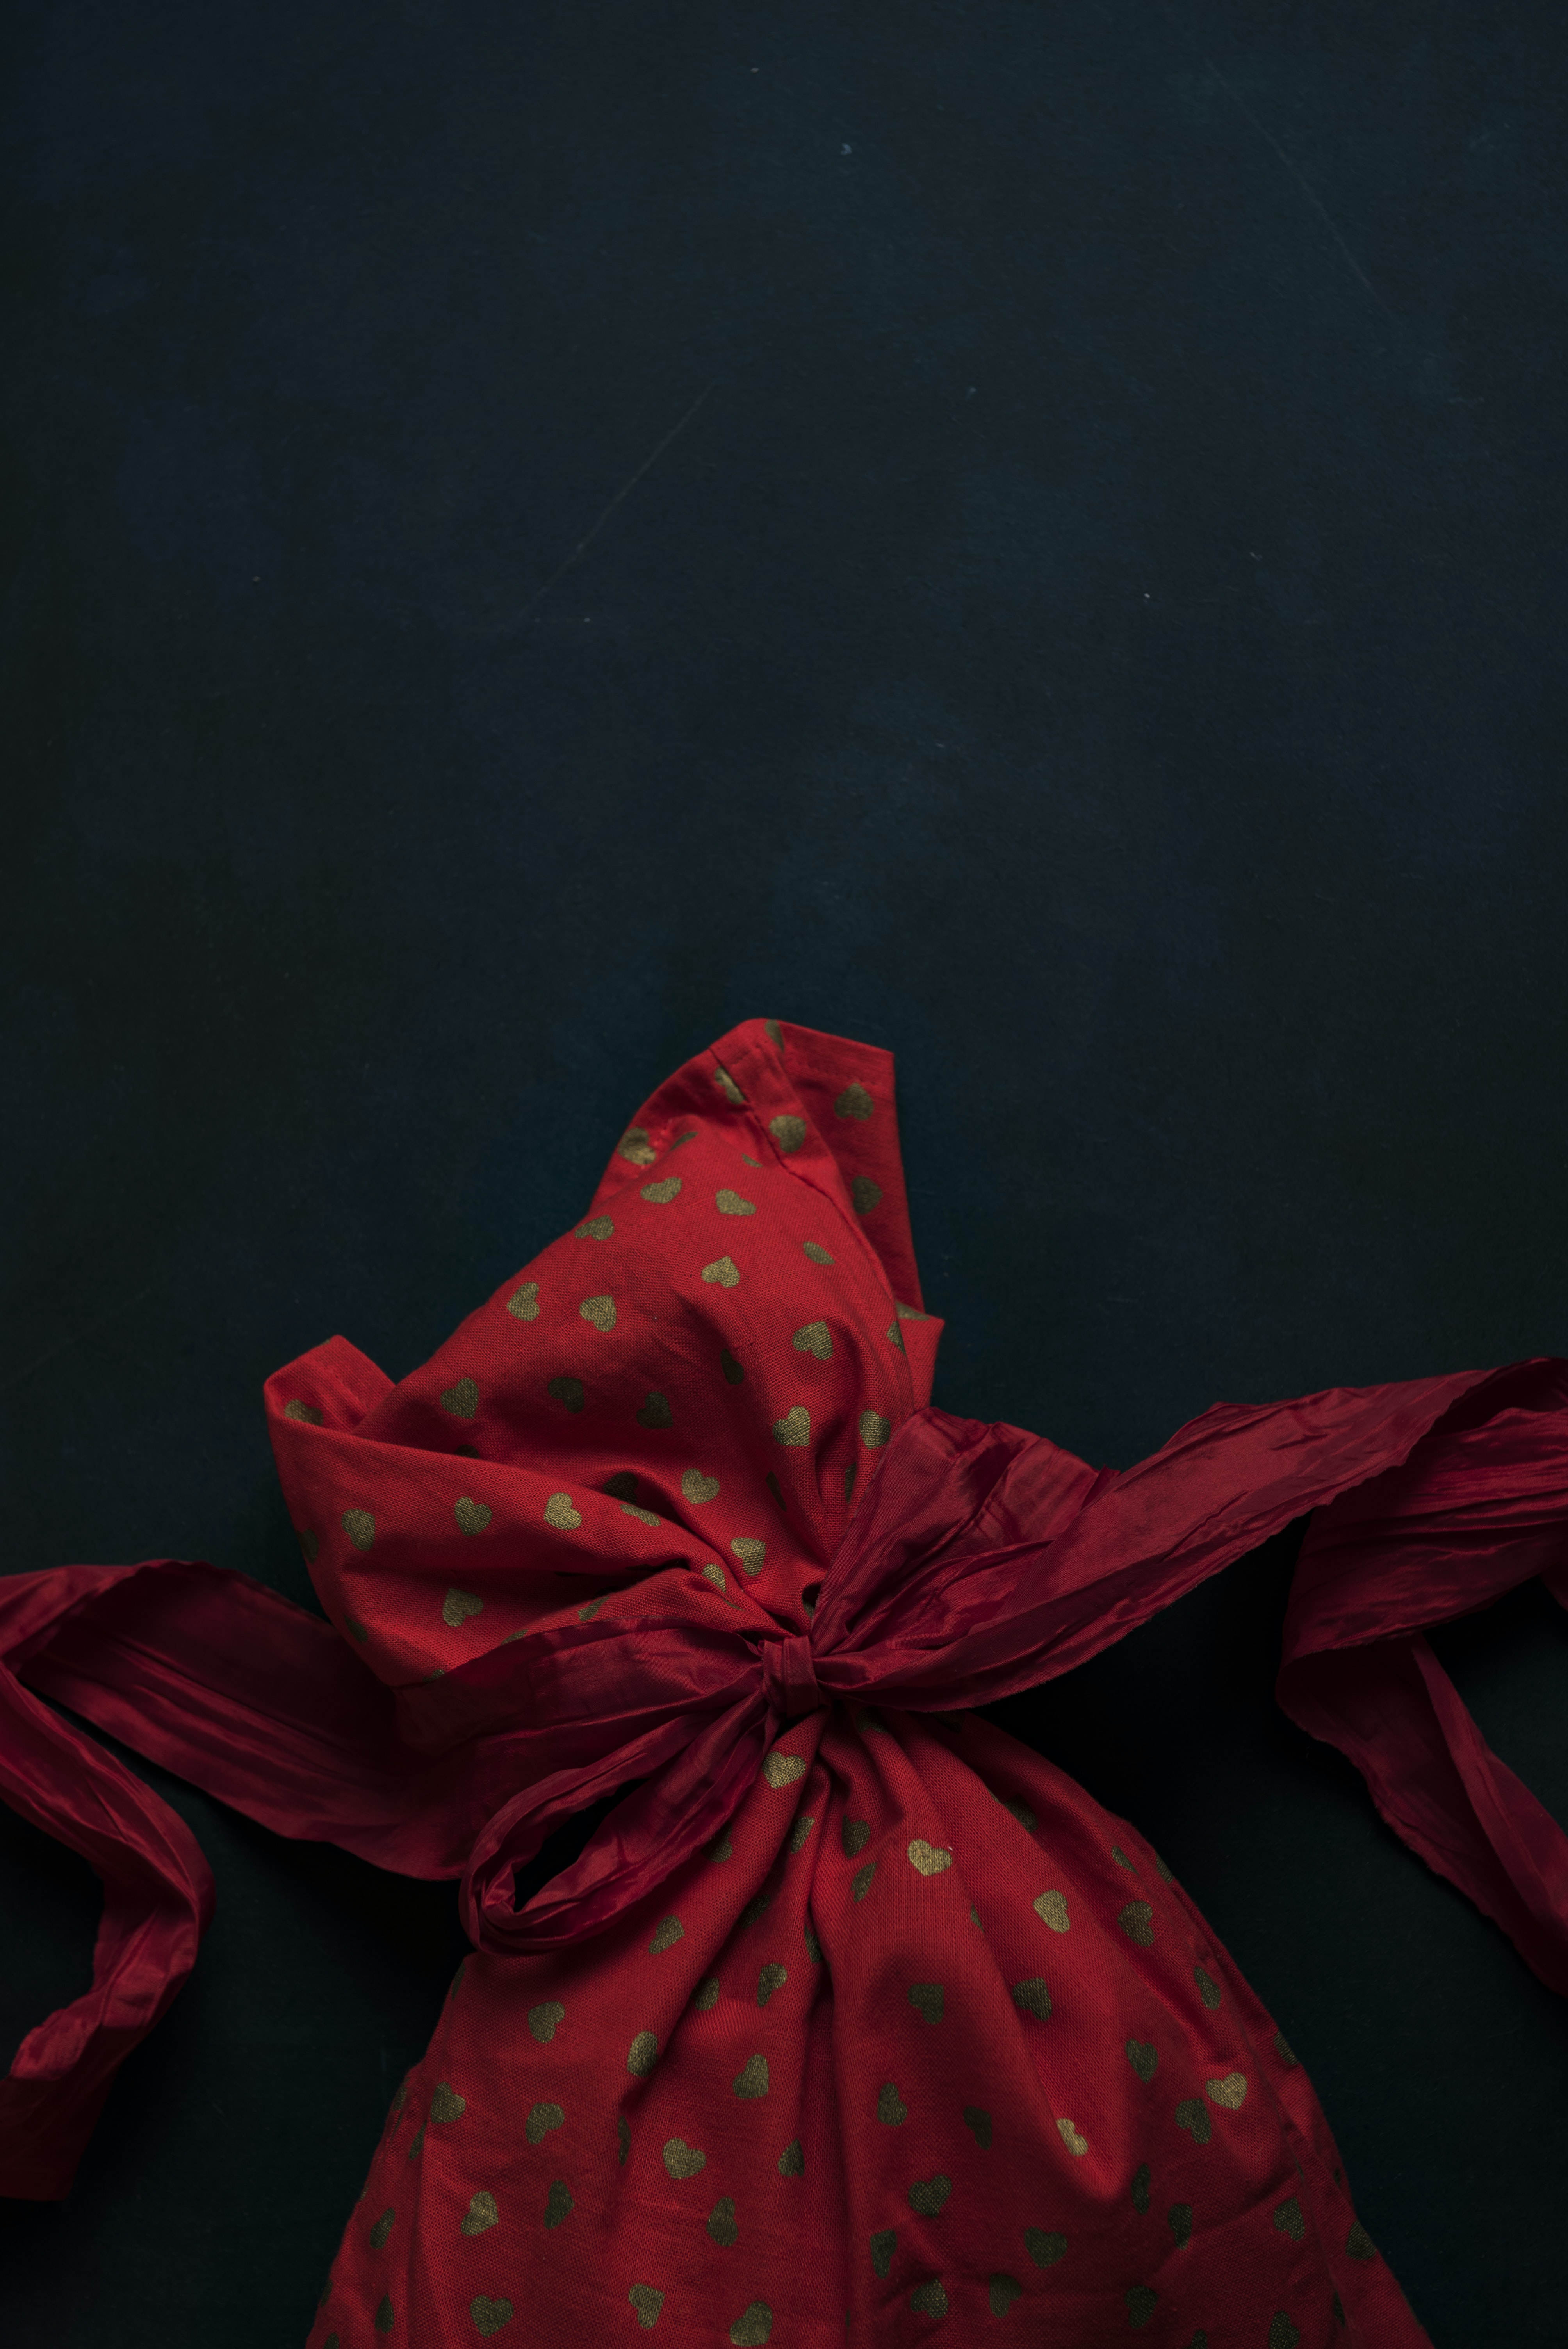 Red Fabric Pictures Download Free Images On Unsplash